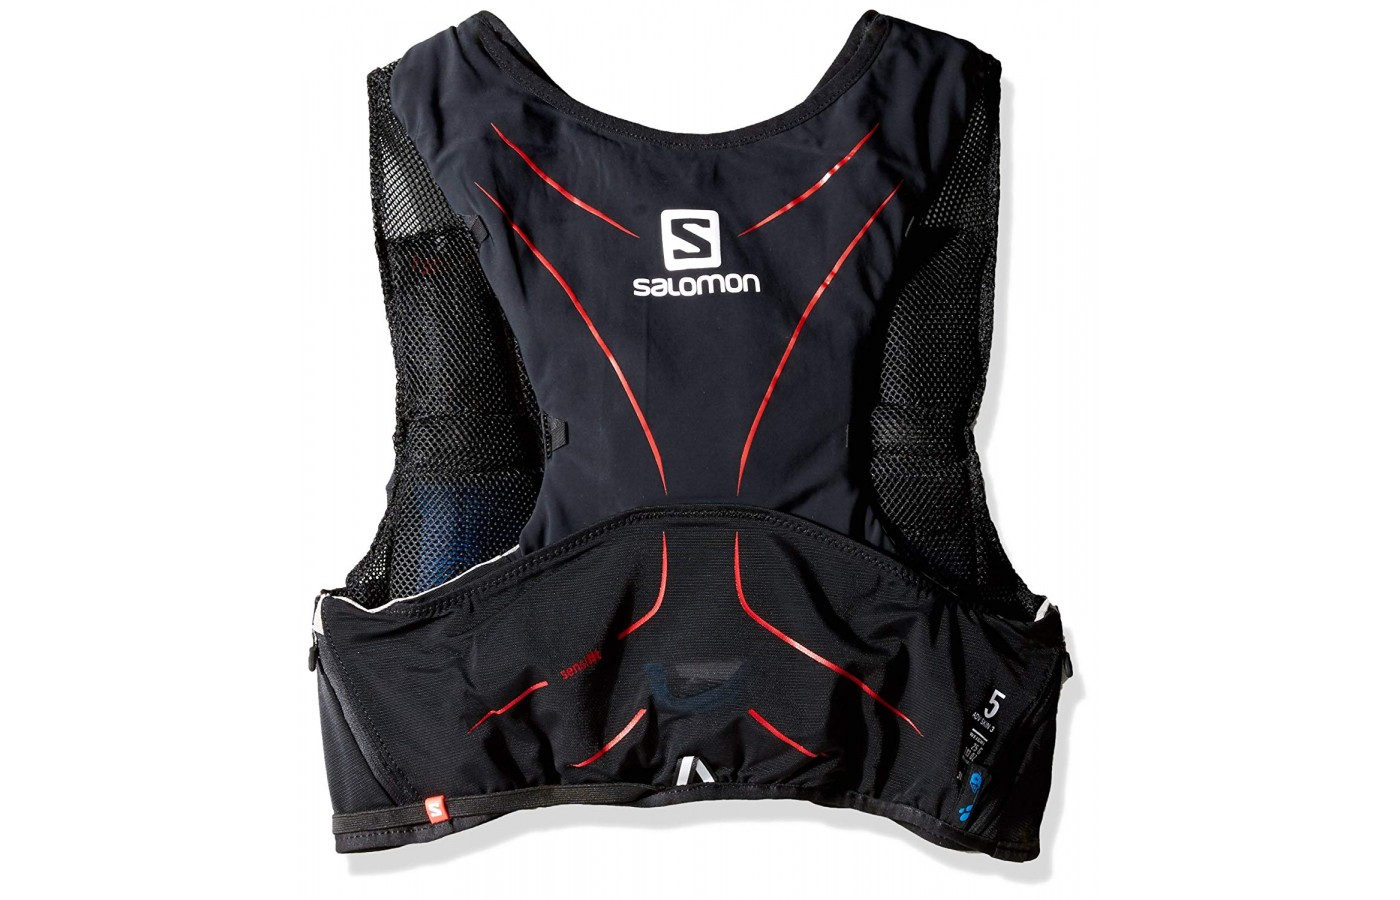 Salomon ADV Skin 12 Back